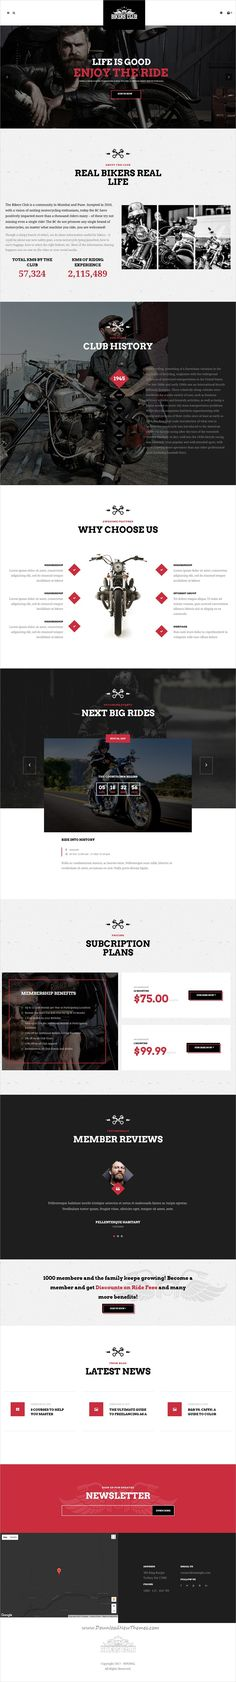 Bikersclub is clean and modern design 3in1 responsive #WordPress theme for #motorcycle and #bikes clubs website with shop download now..